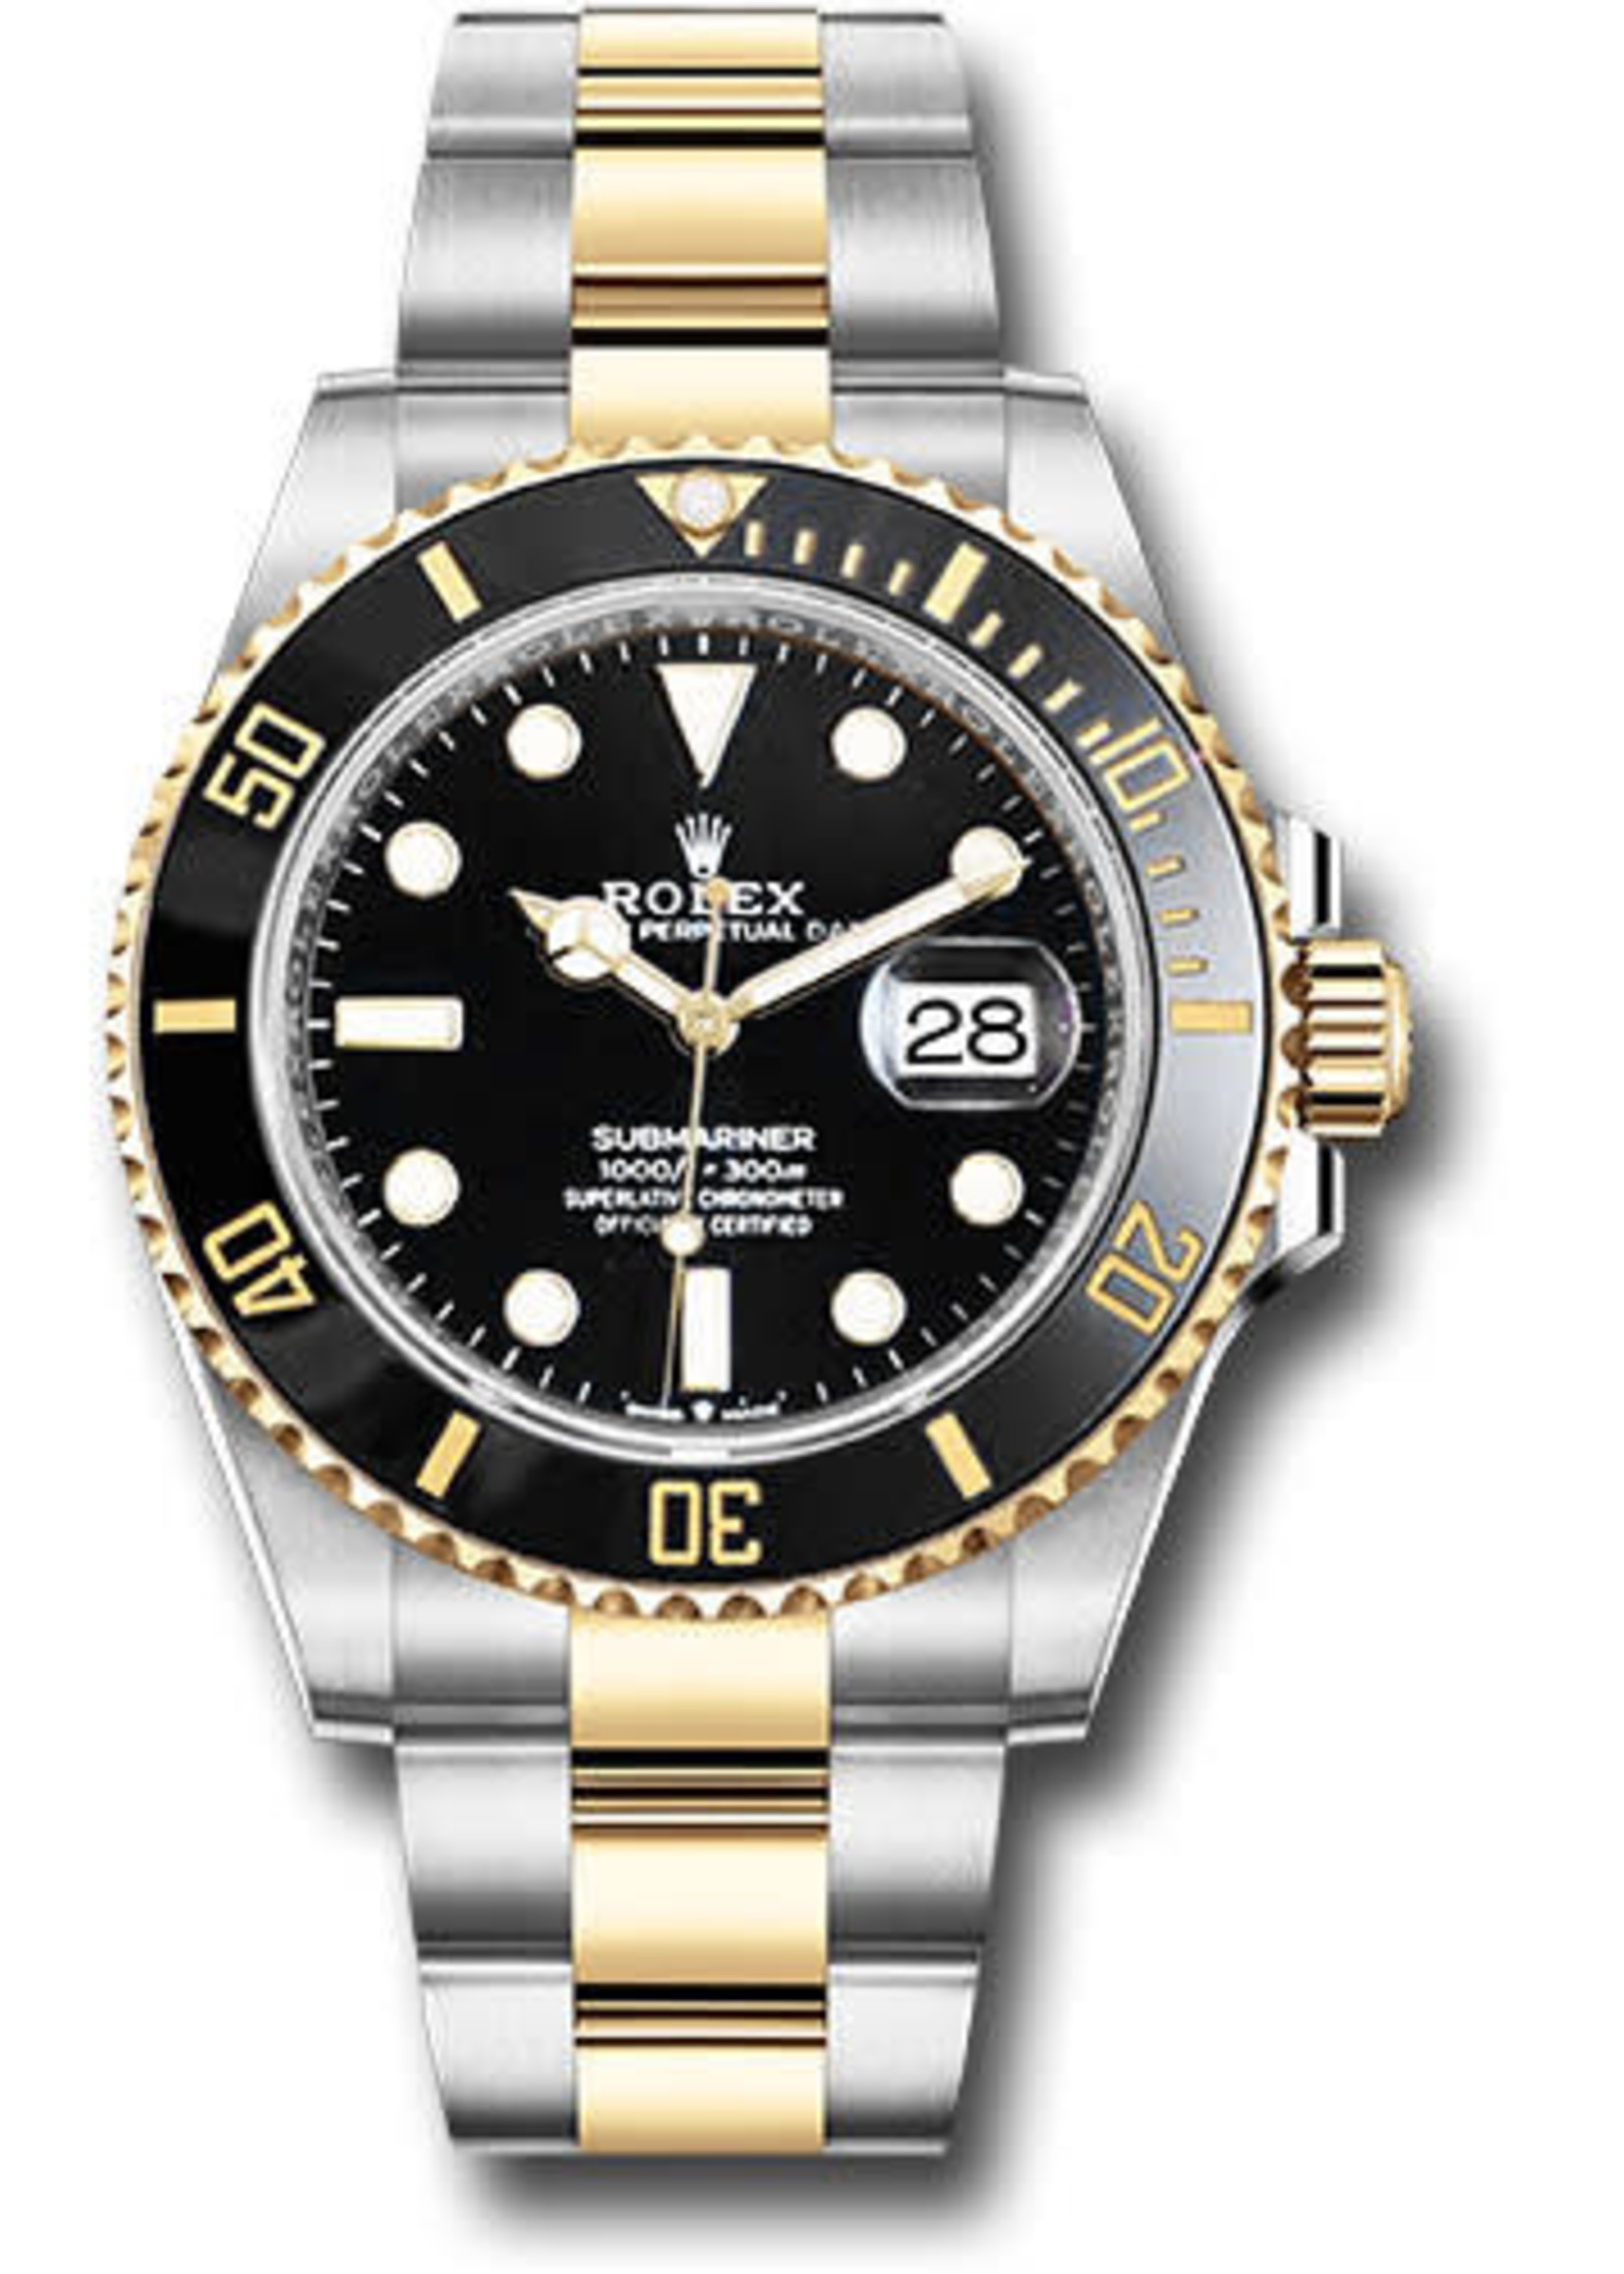 Rolex ROLEX SUBMARINER 2020 41MM (B+P) #126613LN